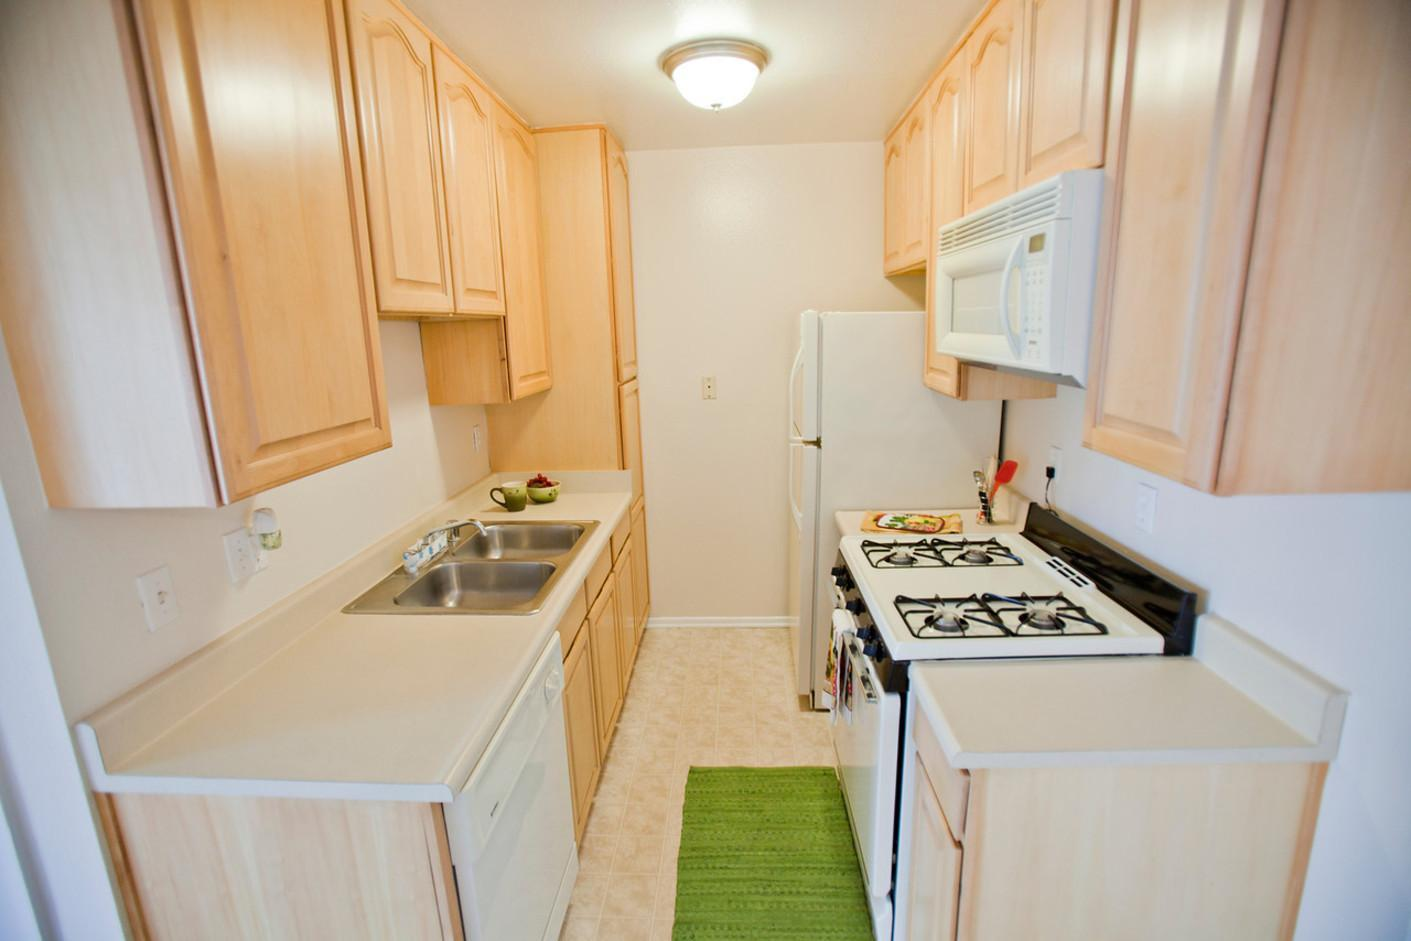 125 W Olive Ave #116, Monrovia, CA - $1,815 USD/ month